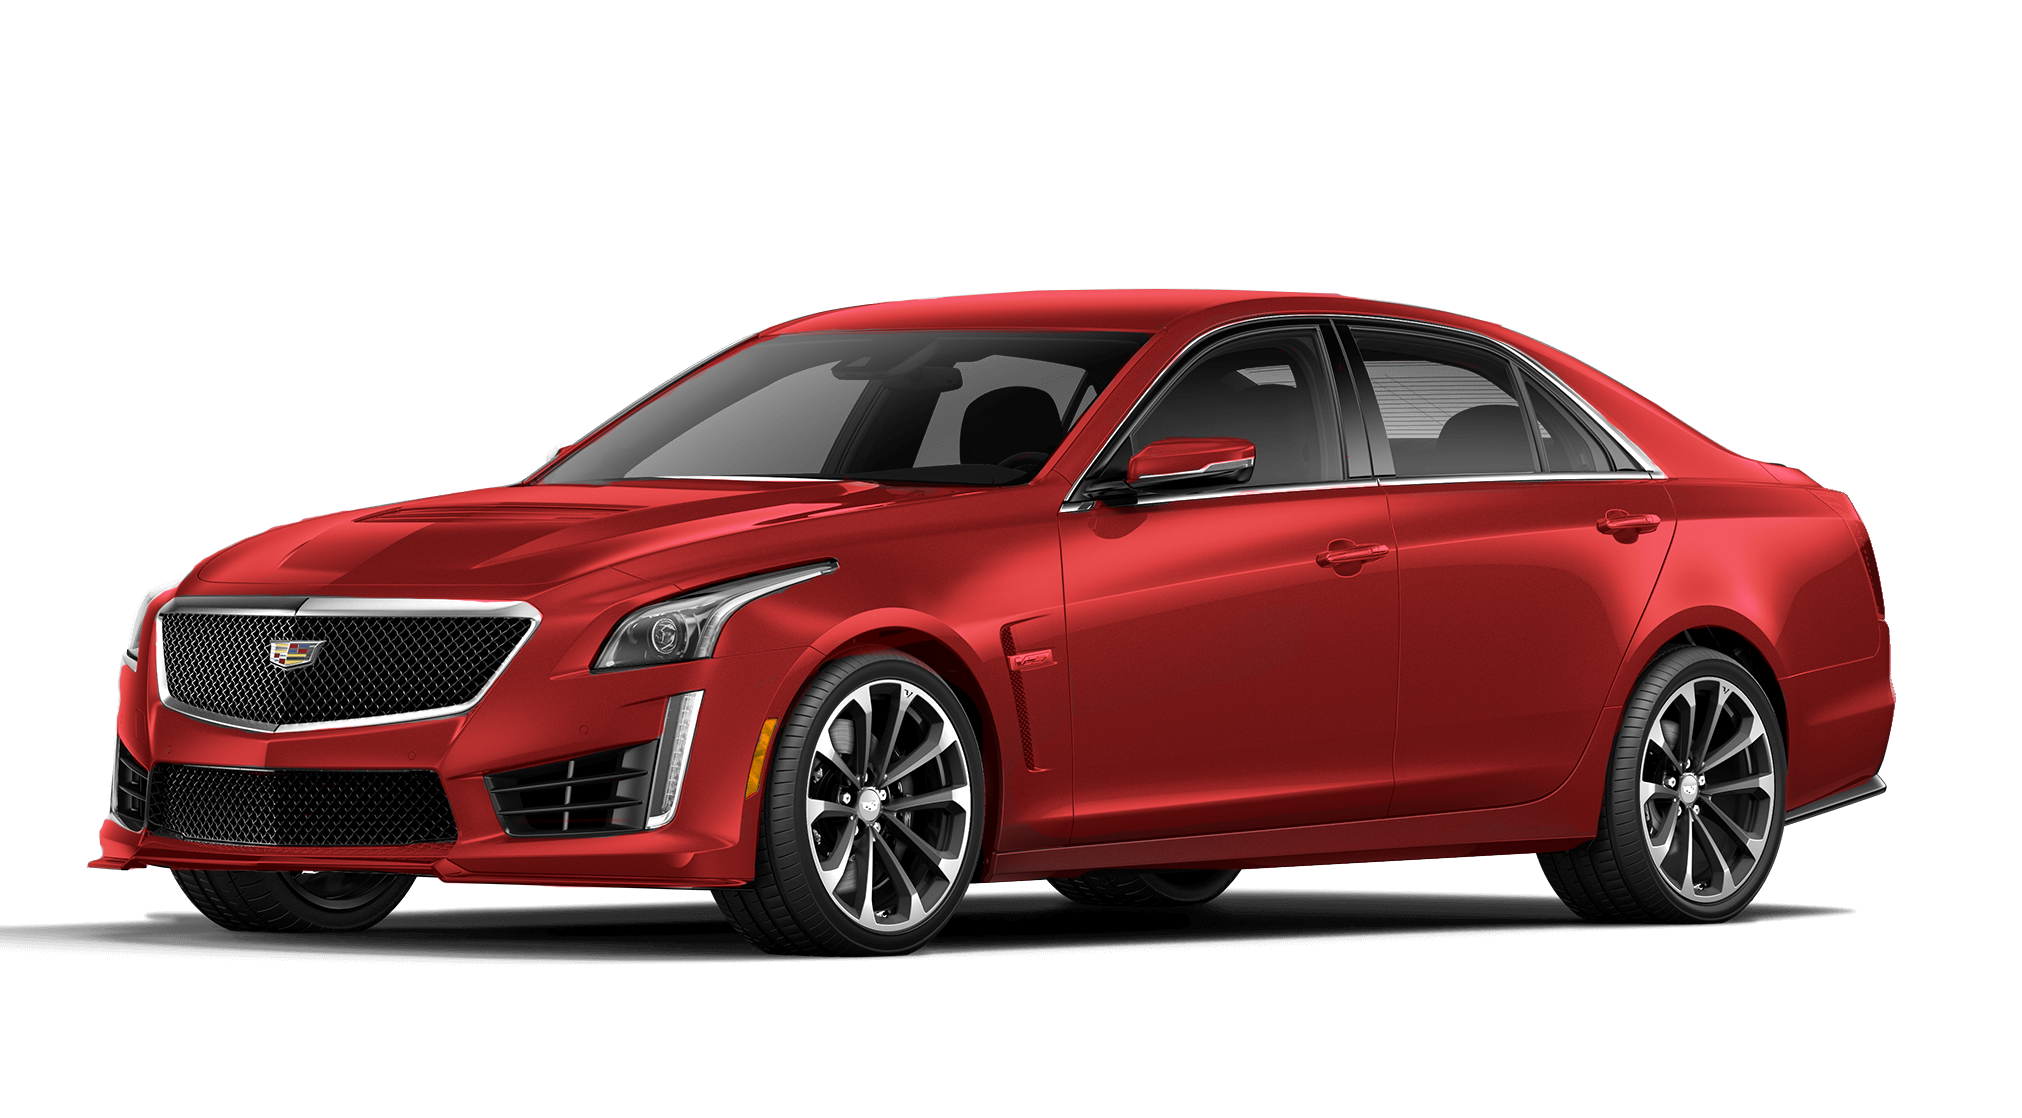 2017 cadillac cts v winnipeg cts v coupe details specs gauthier. Black Bedroom Furniture Sets. Home Design Ideas